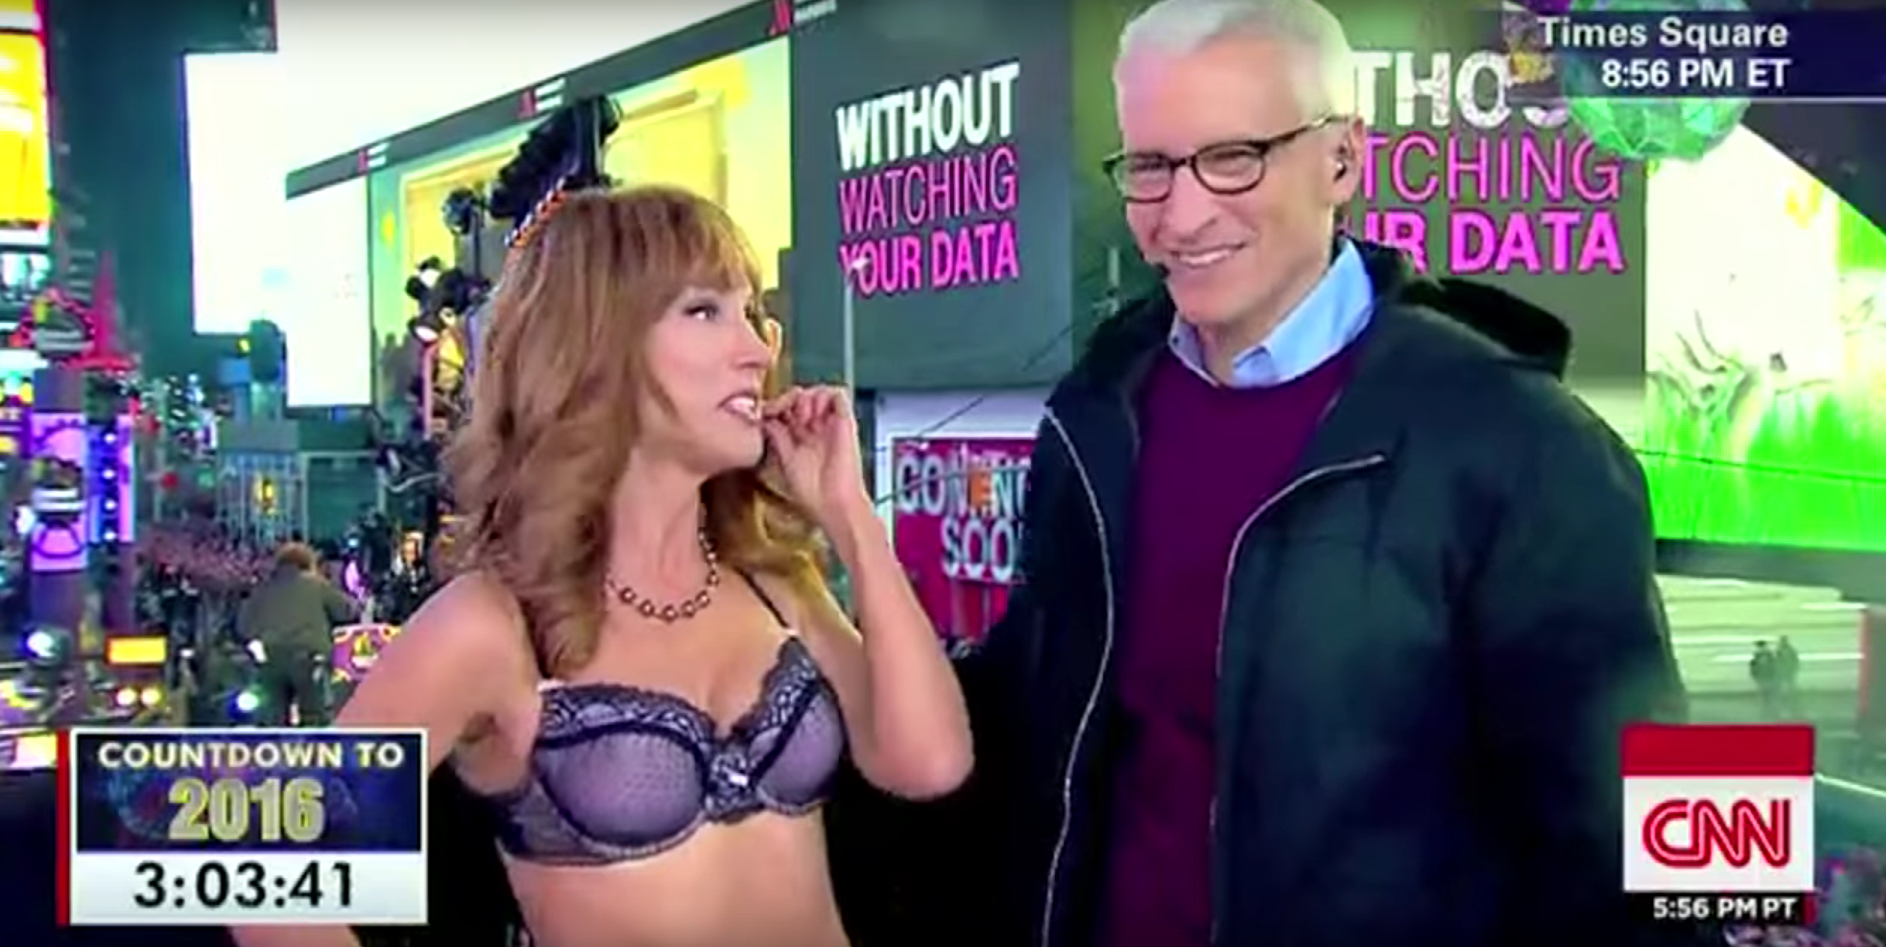 Drunk CNN Host tells Kathy Griffin she has 'Nice Boobs' LIVE on TV